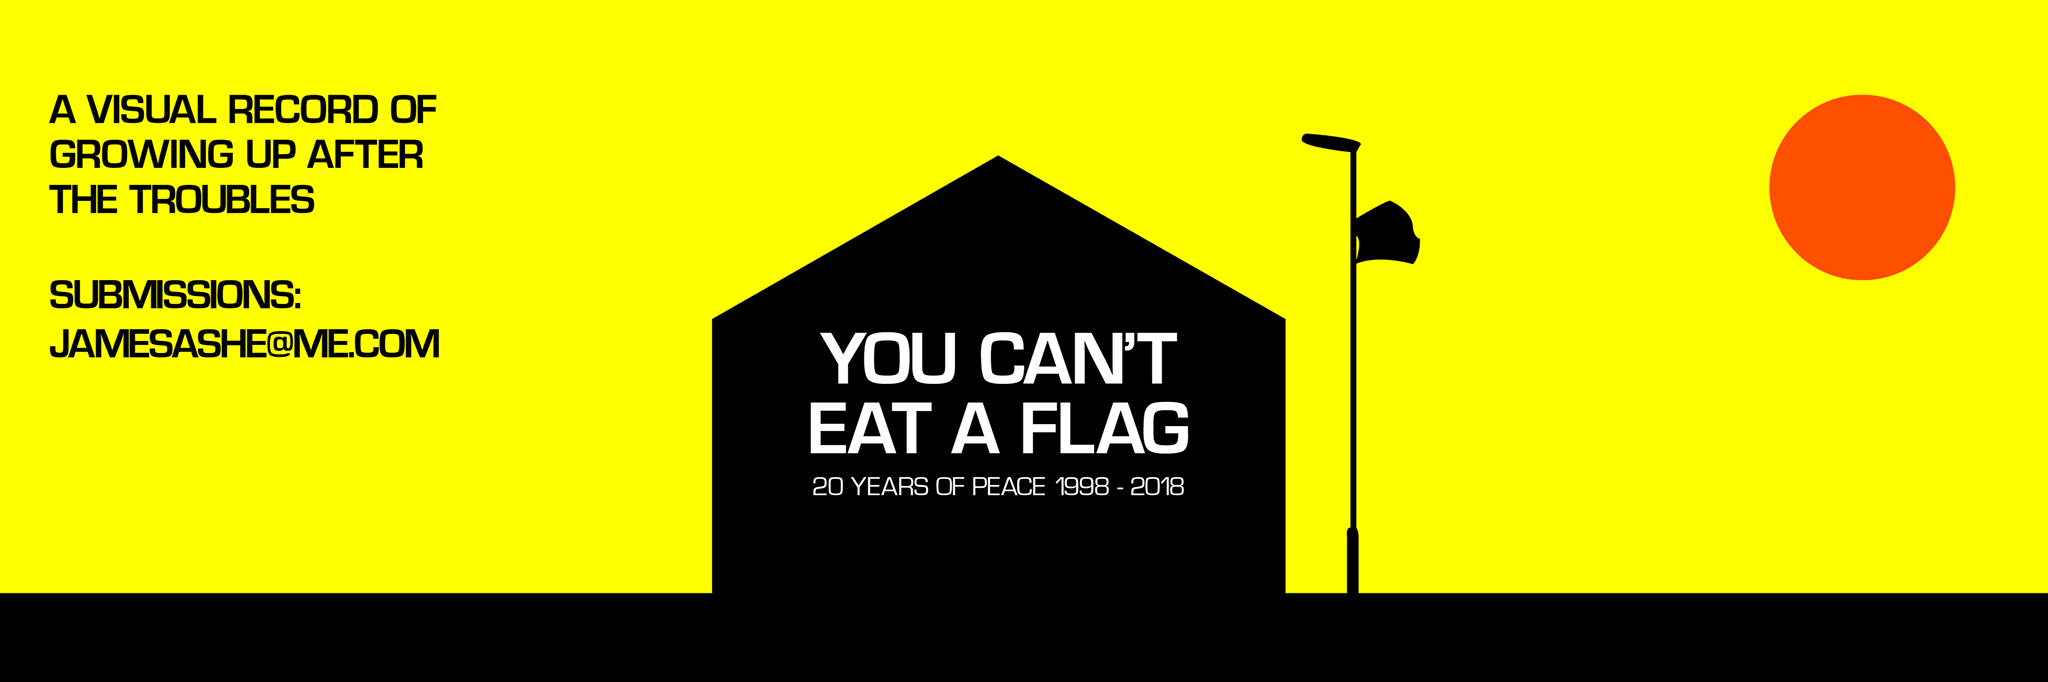 you cant eat a flag.png